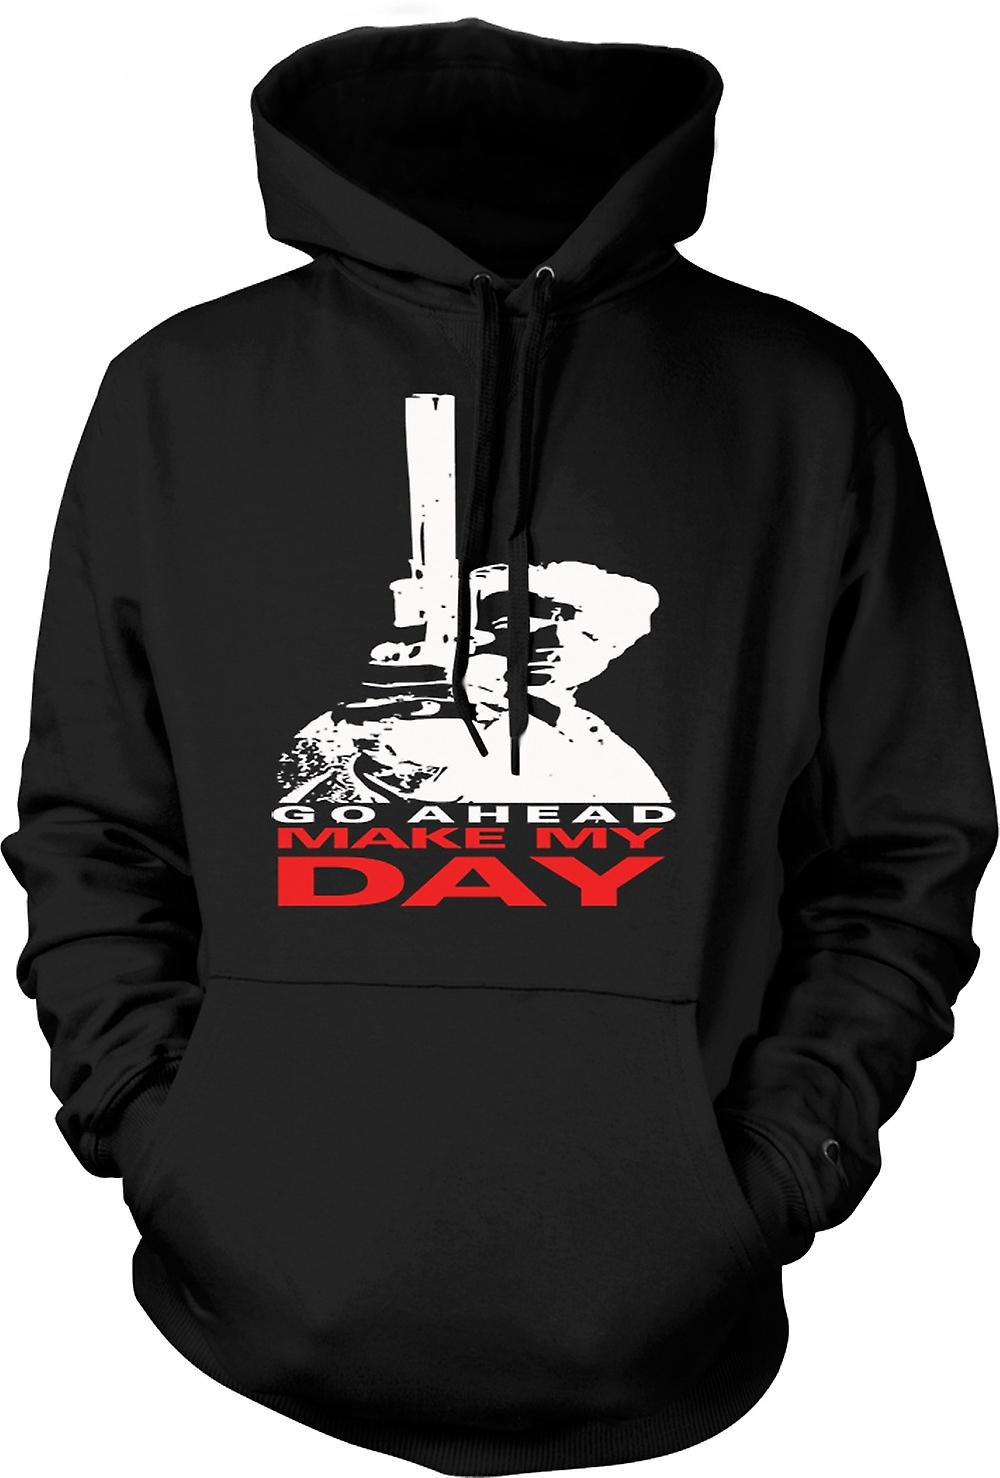 Mens Hoodie - Dirty Harry Make My Day - Clint